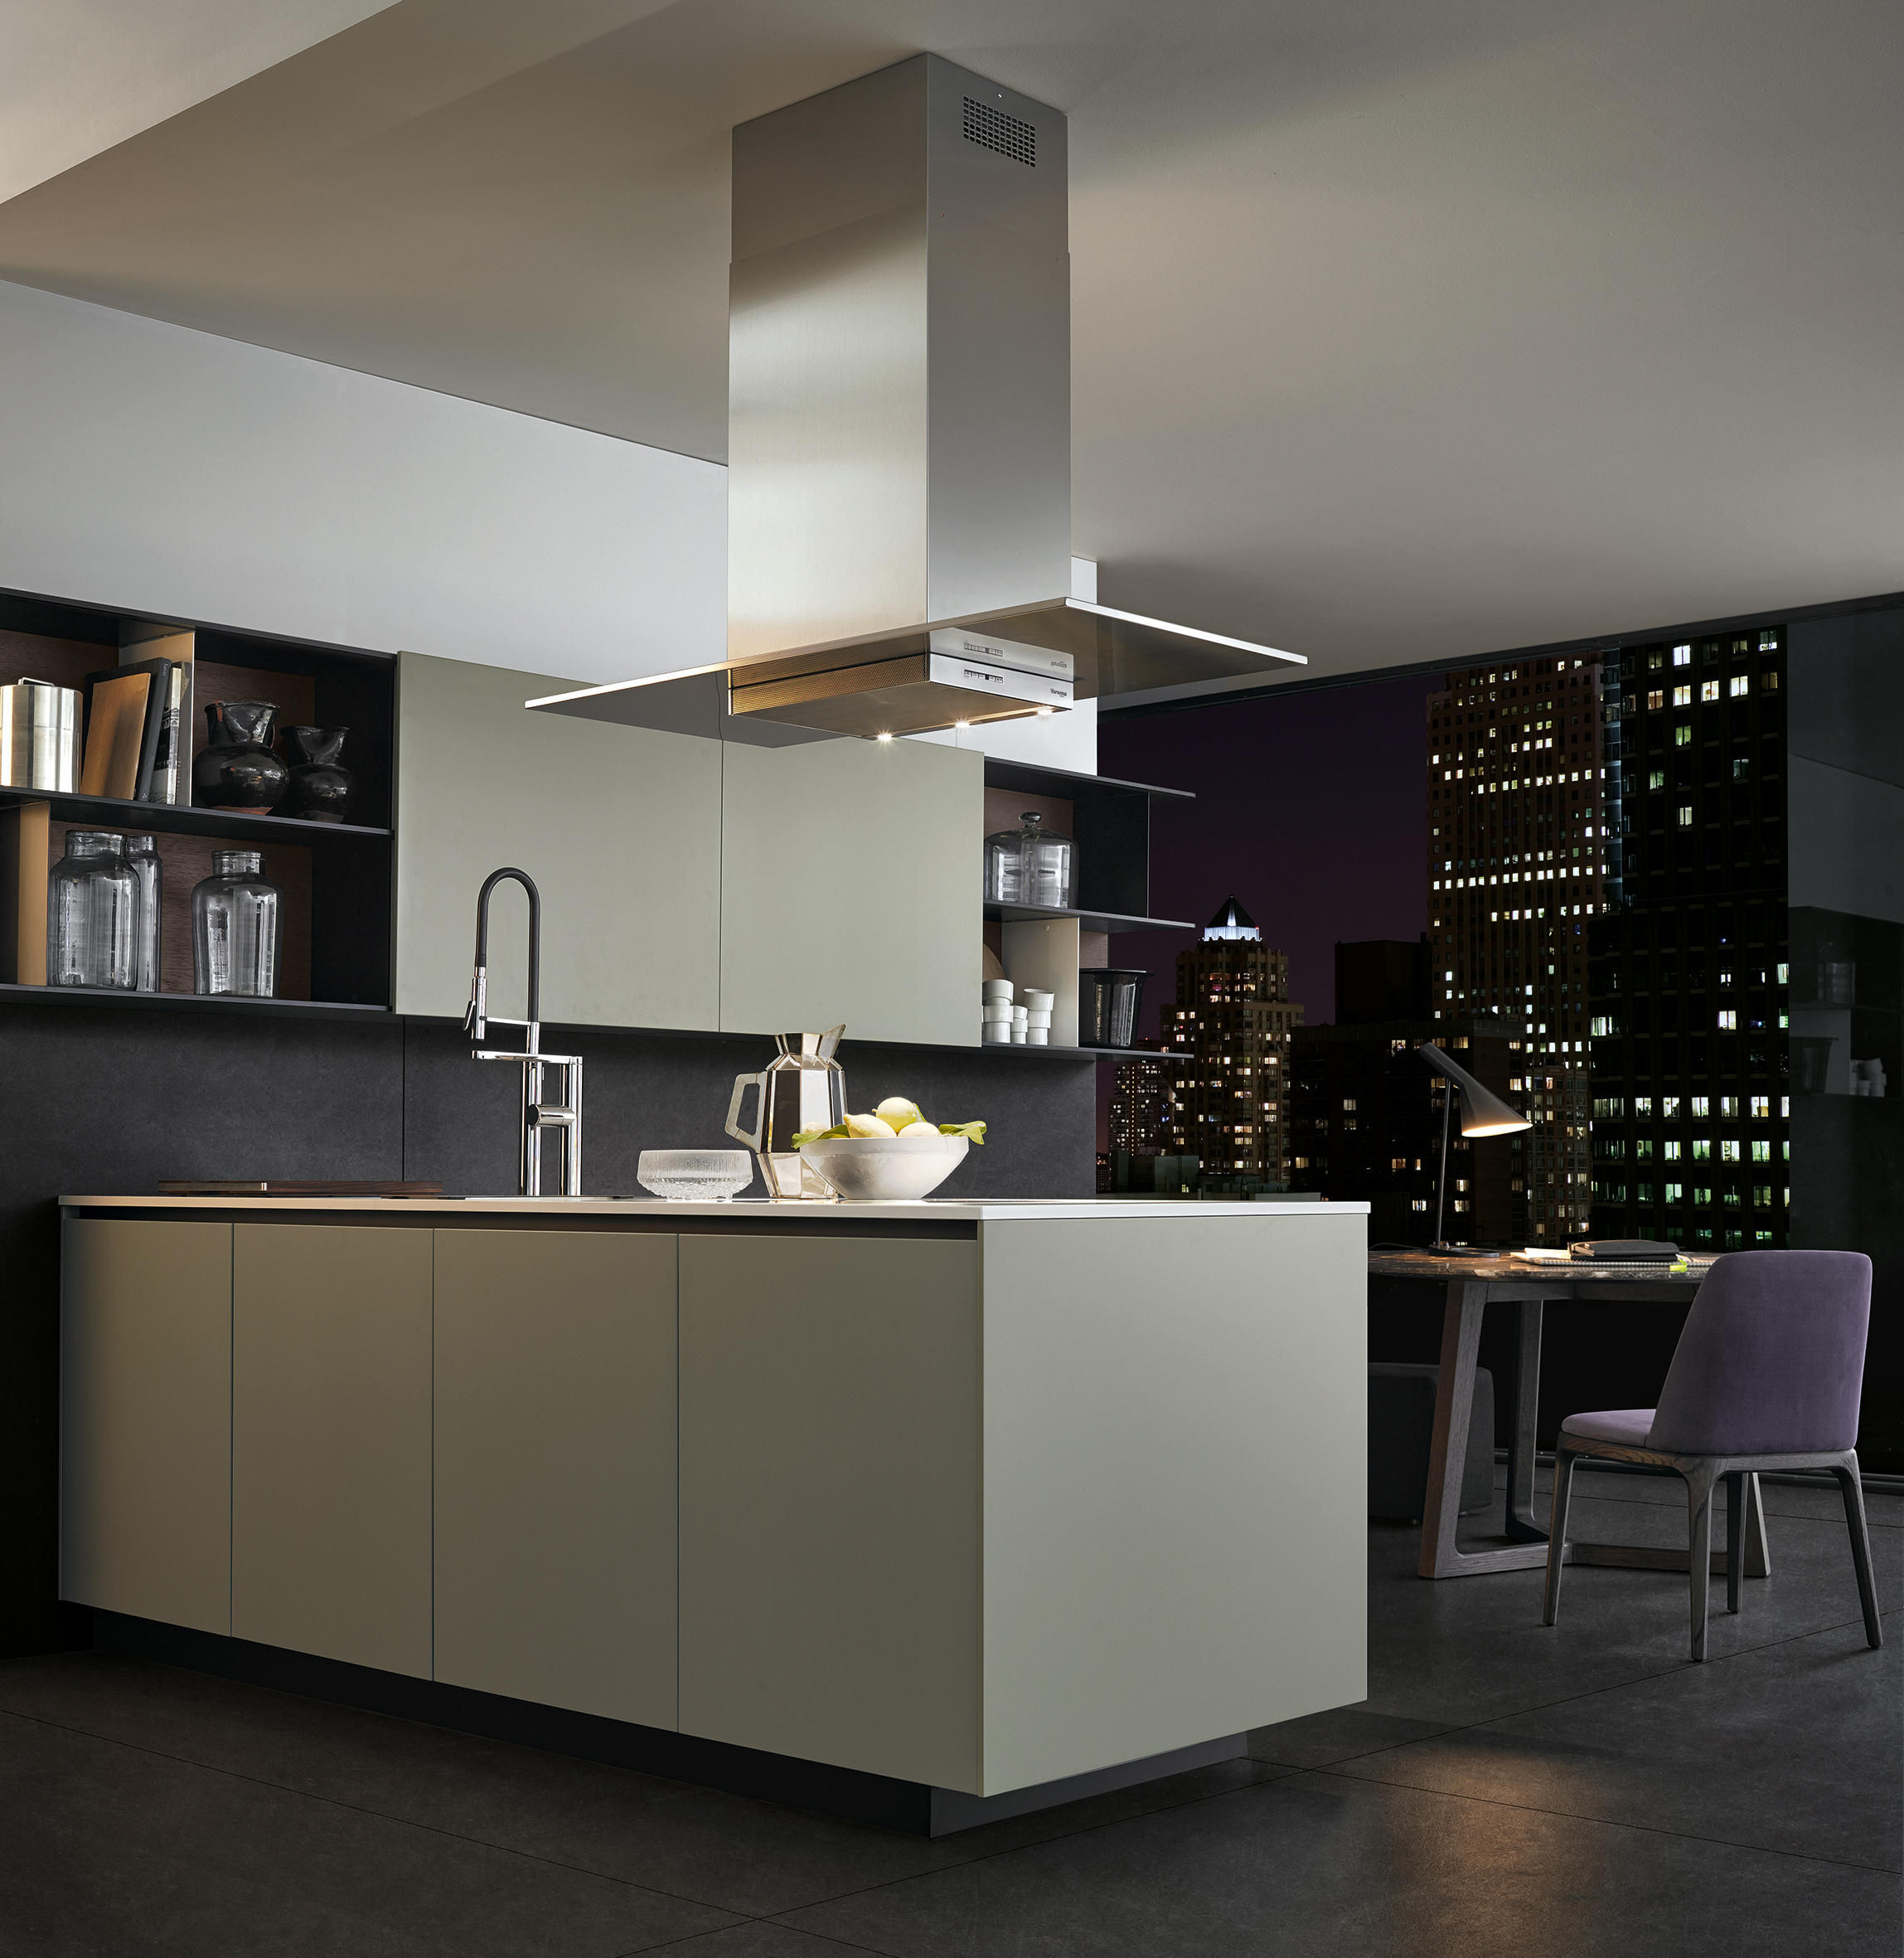 Varenna Cocinas Alea Fitted Kitchens From Varenna Poliform Architonic